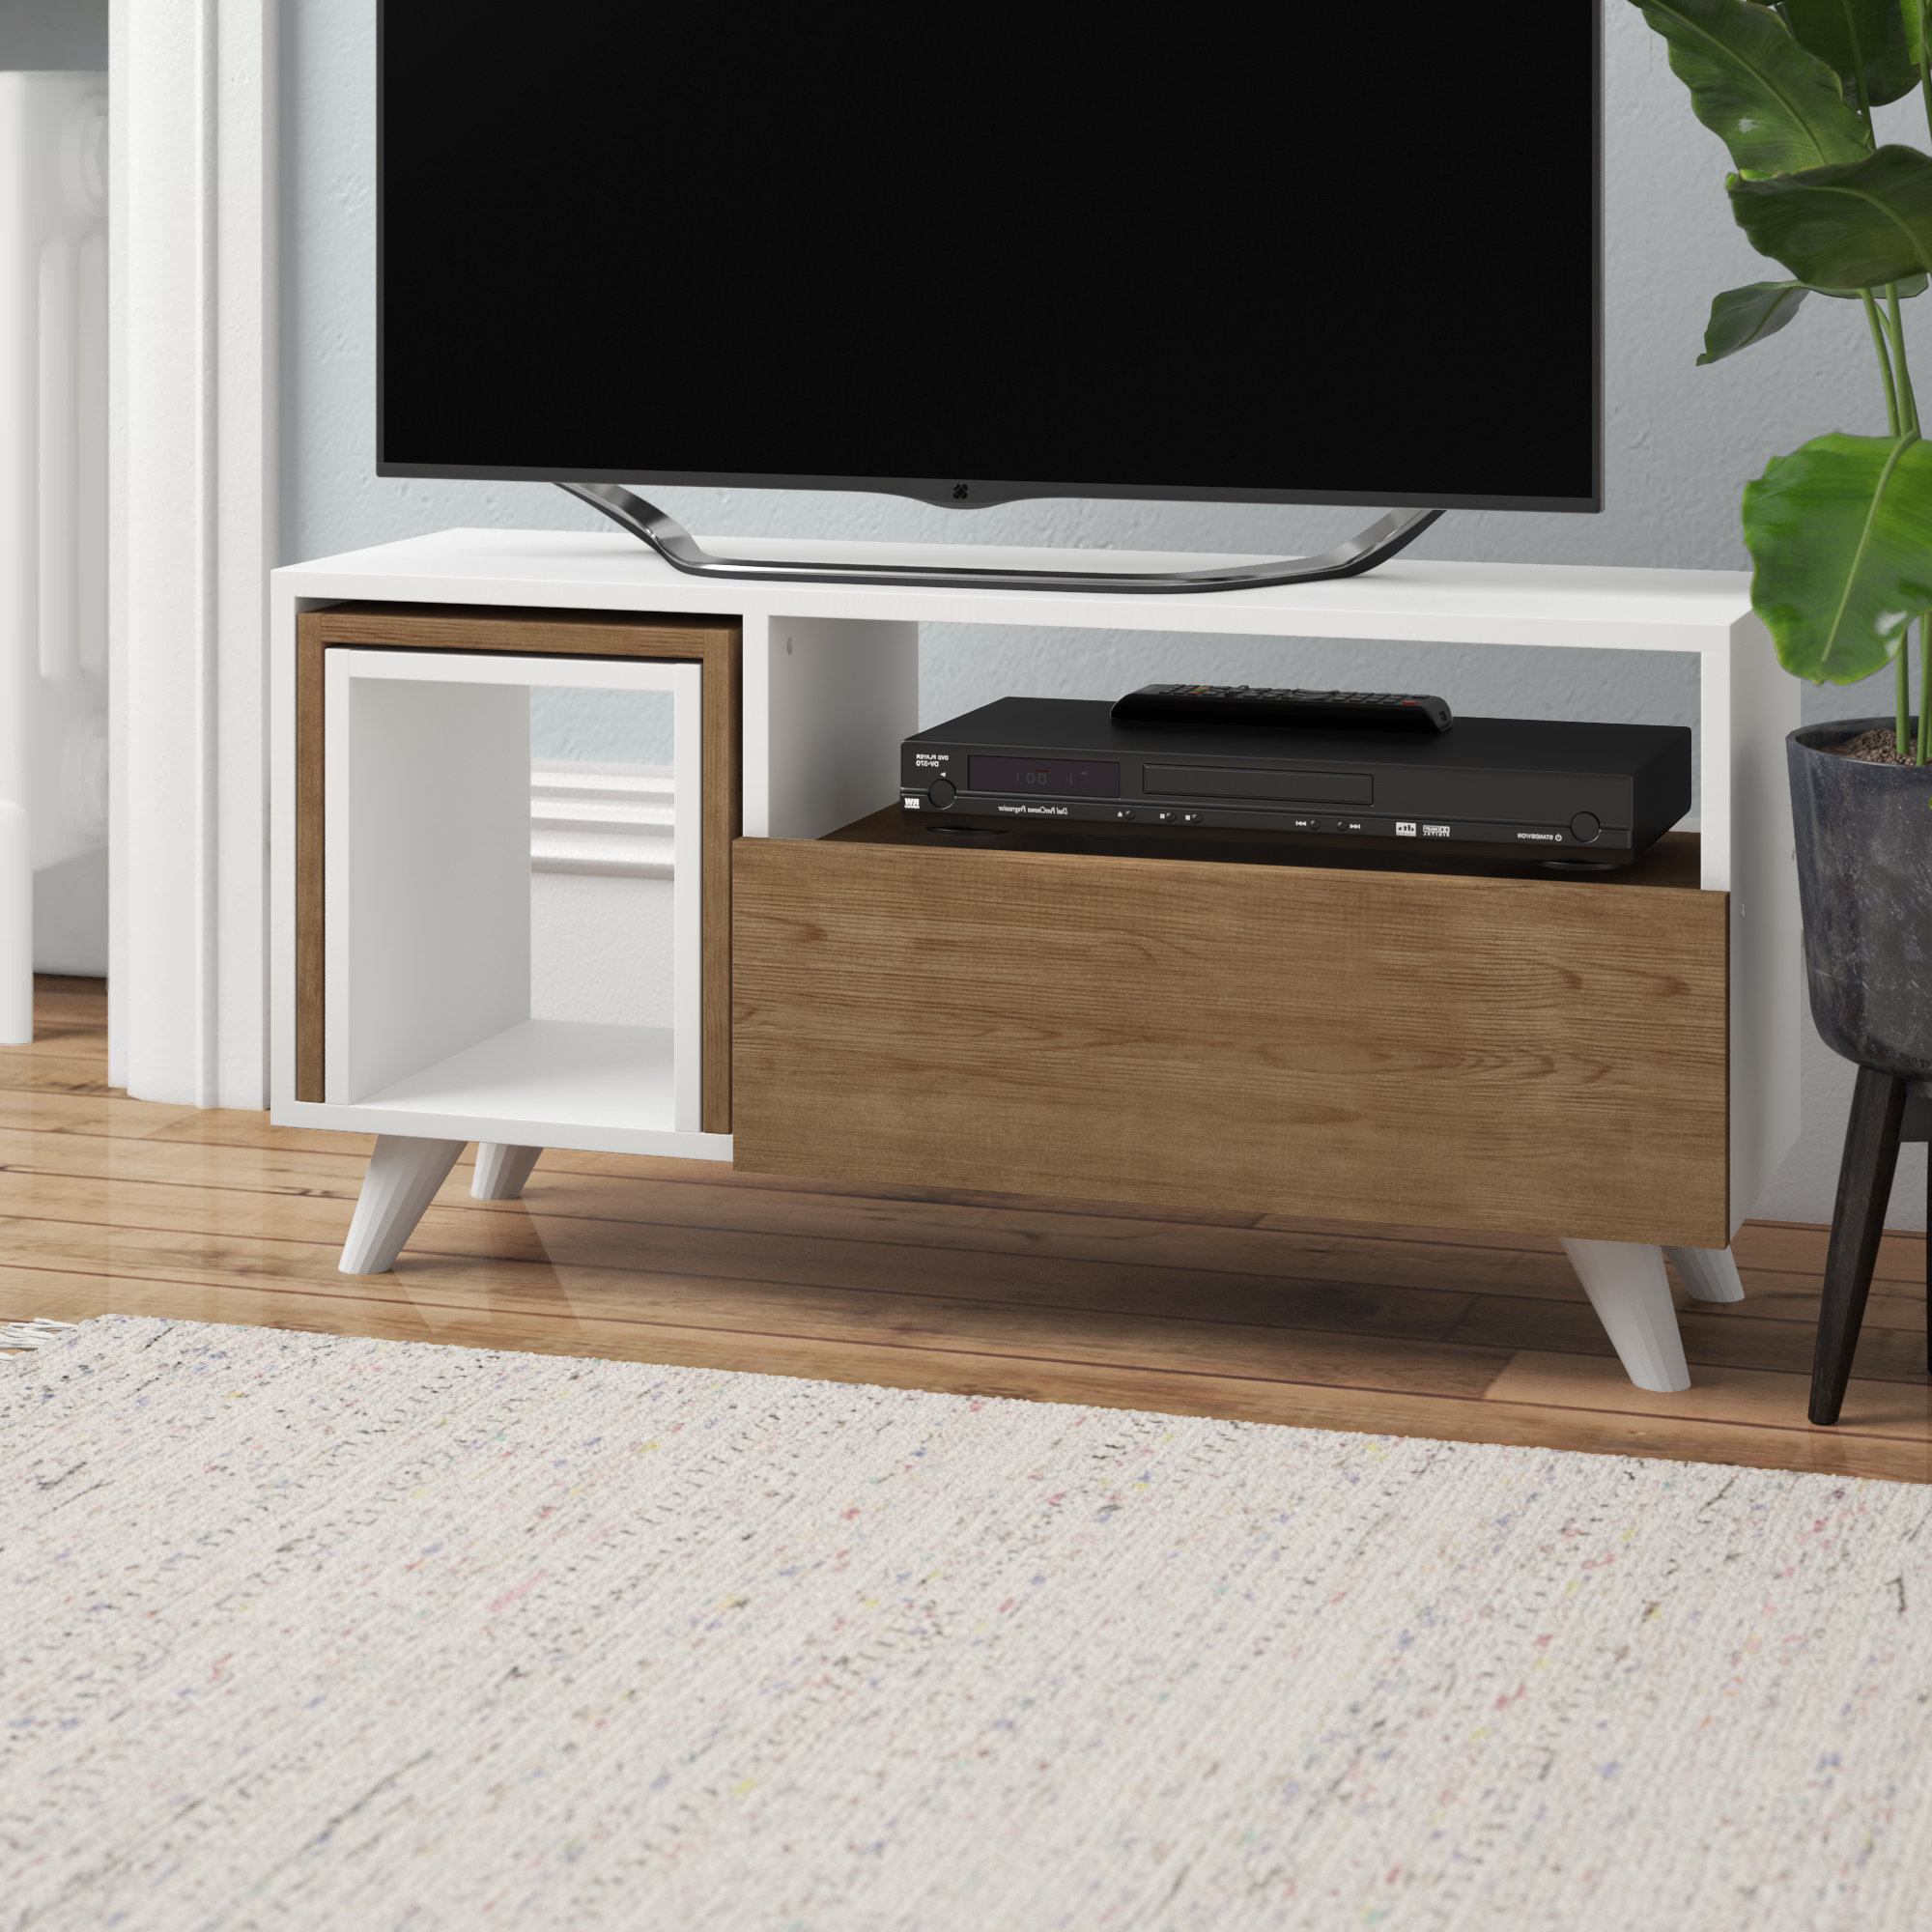 Tv Stand With Side Tables | Wayfair.co (View 13 of 20)